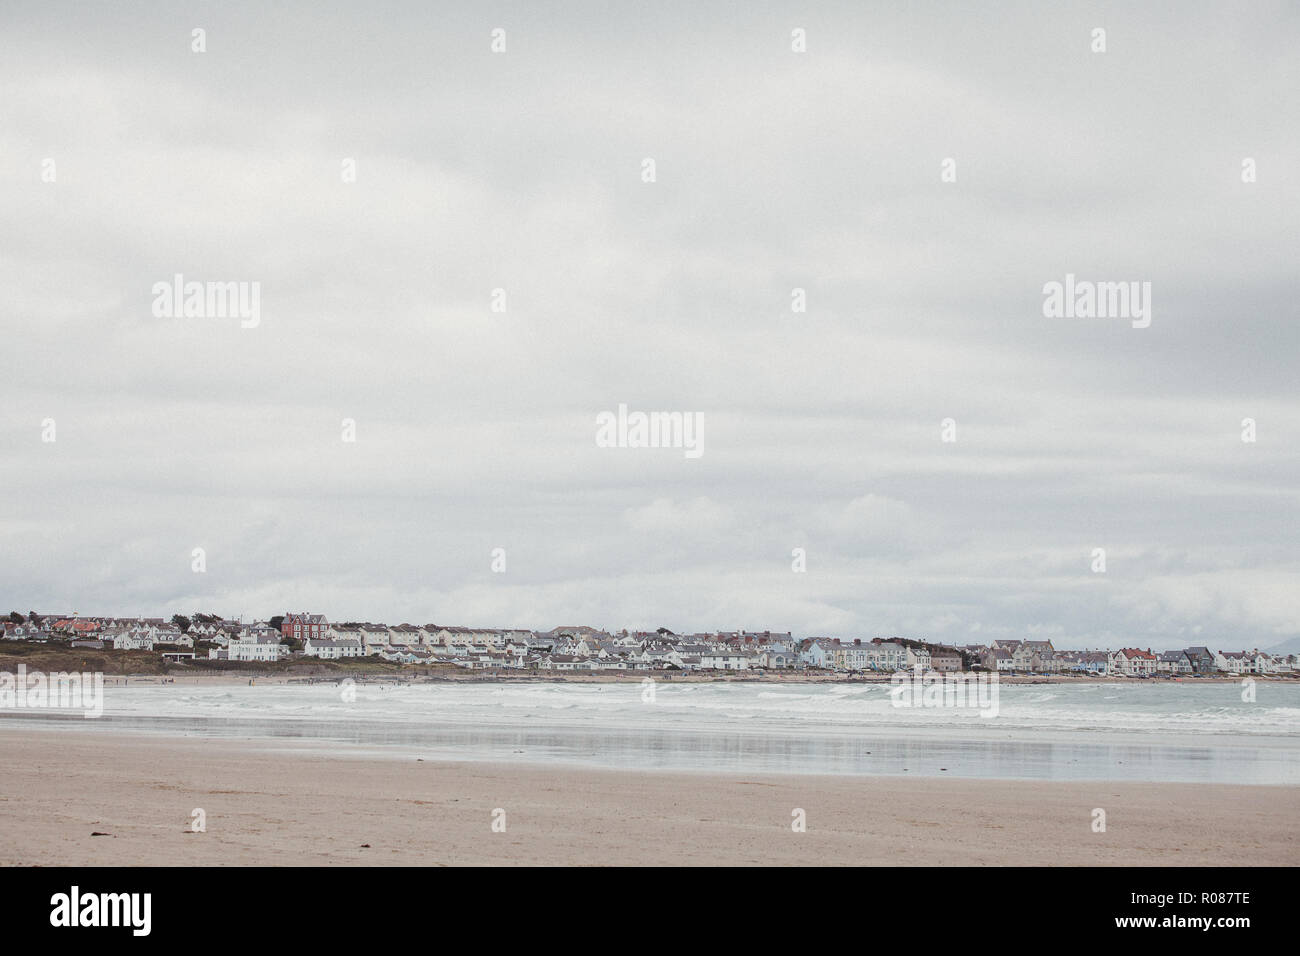 Looking across Cymyran beach towards Rhosneigr town, Anglesey, North wales, UK - Stock Image